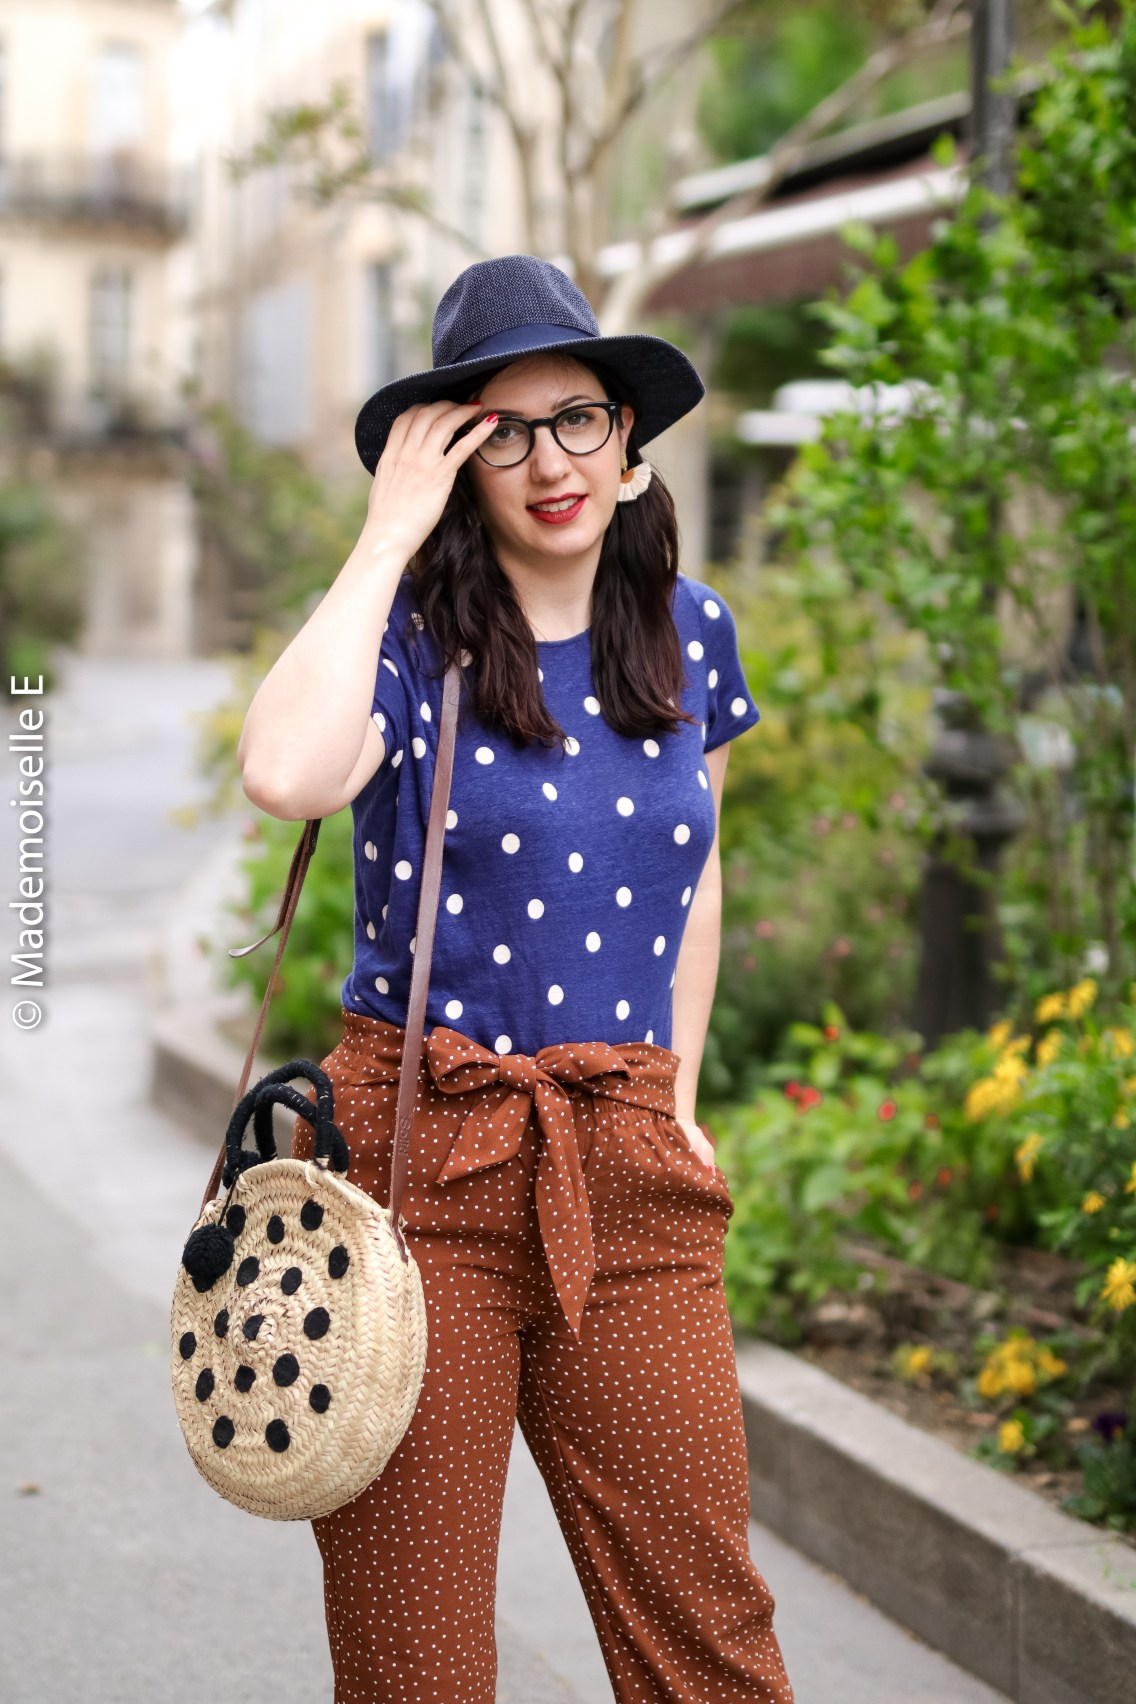 blog-mode-femme-total-look-a-pois-21-mademoiselle-e